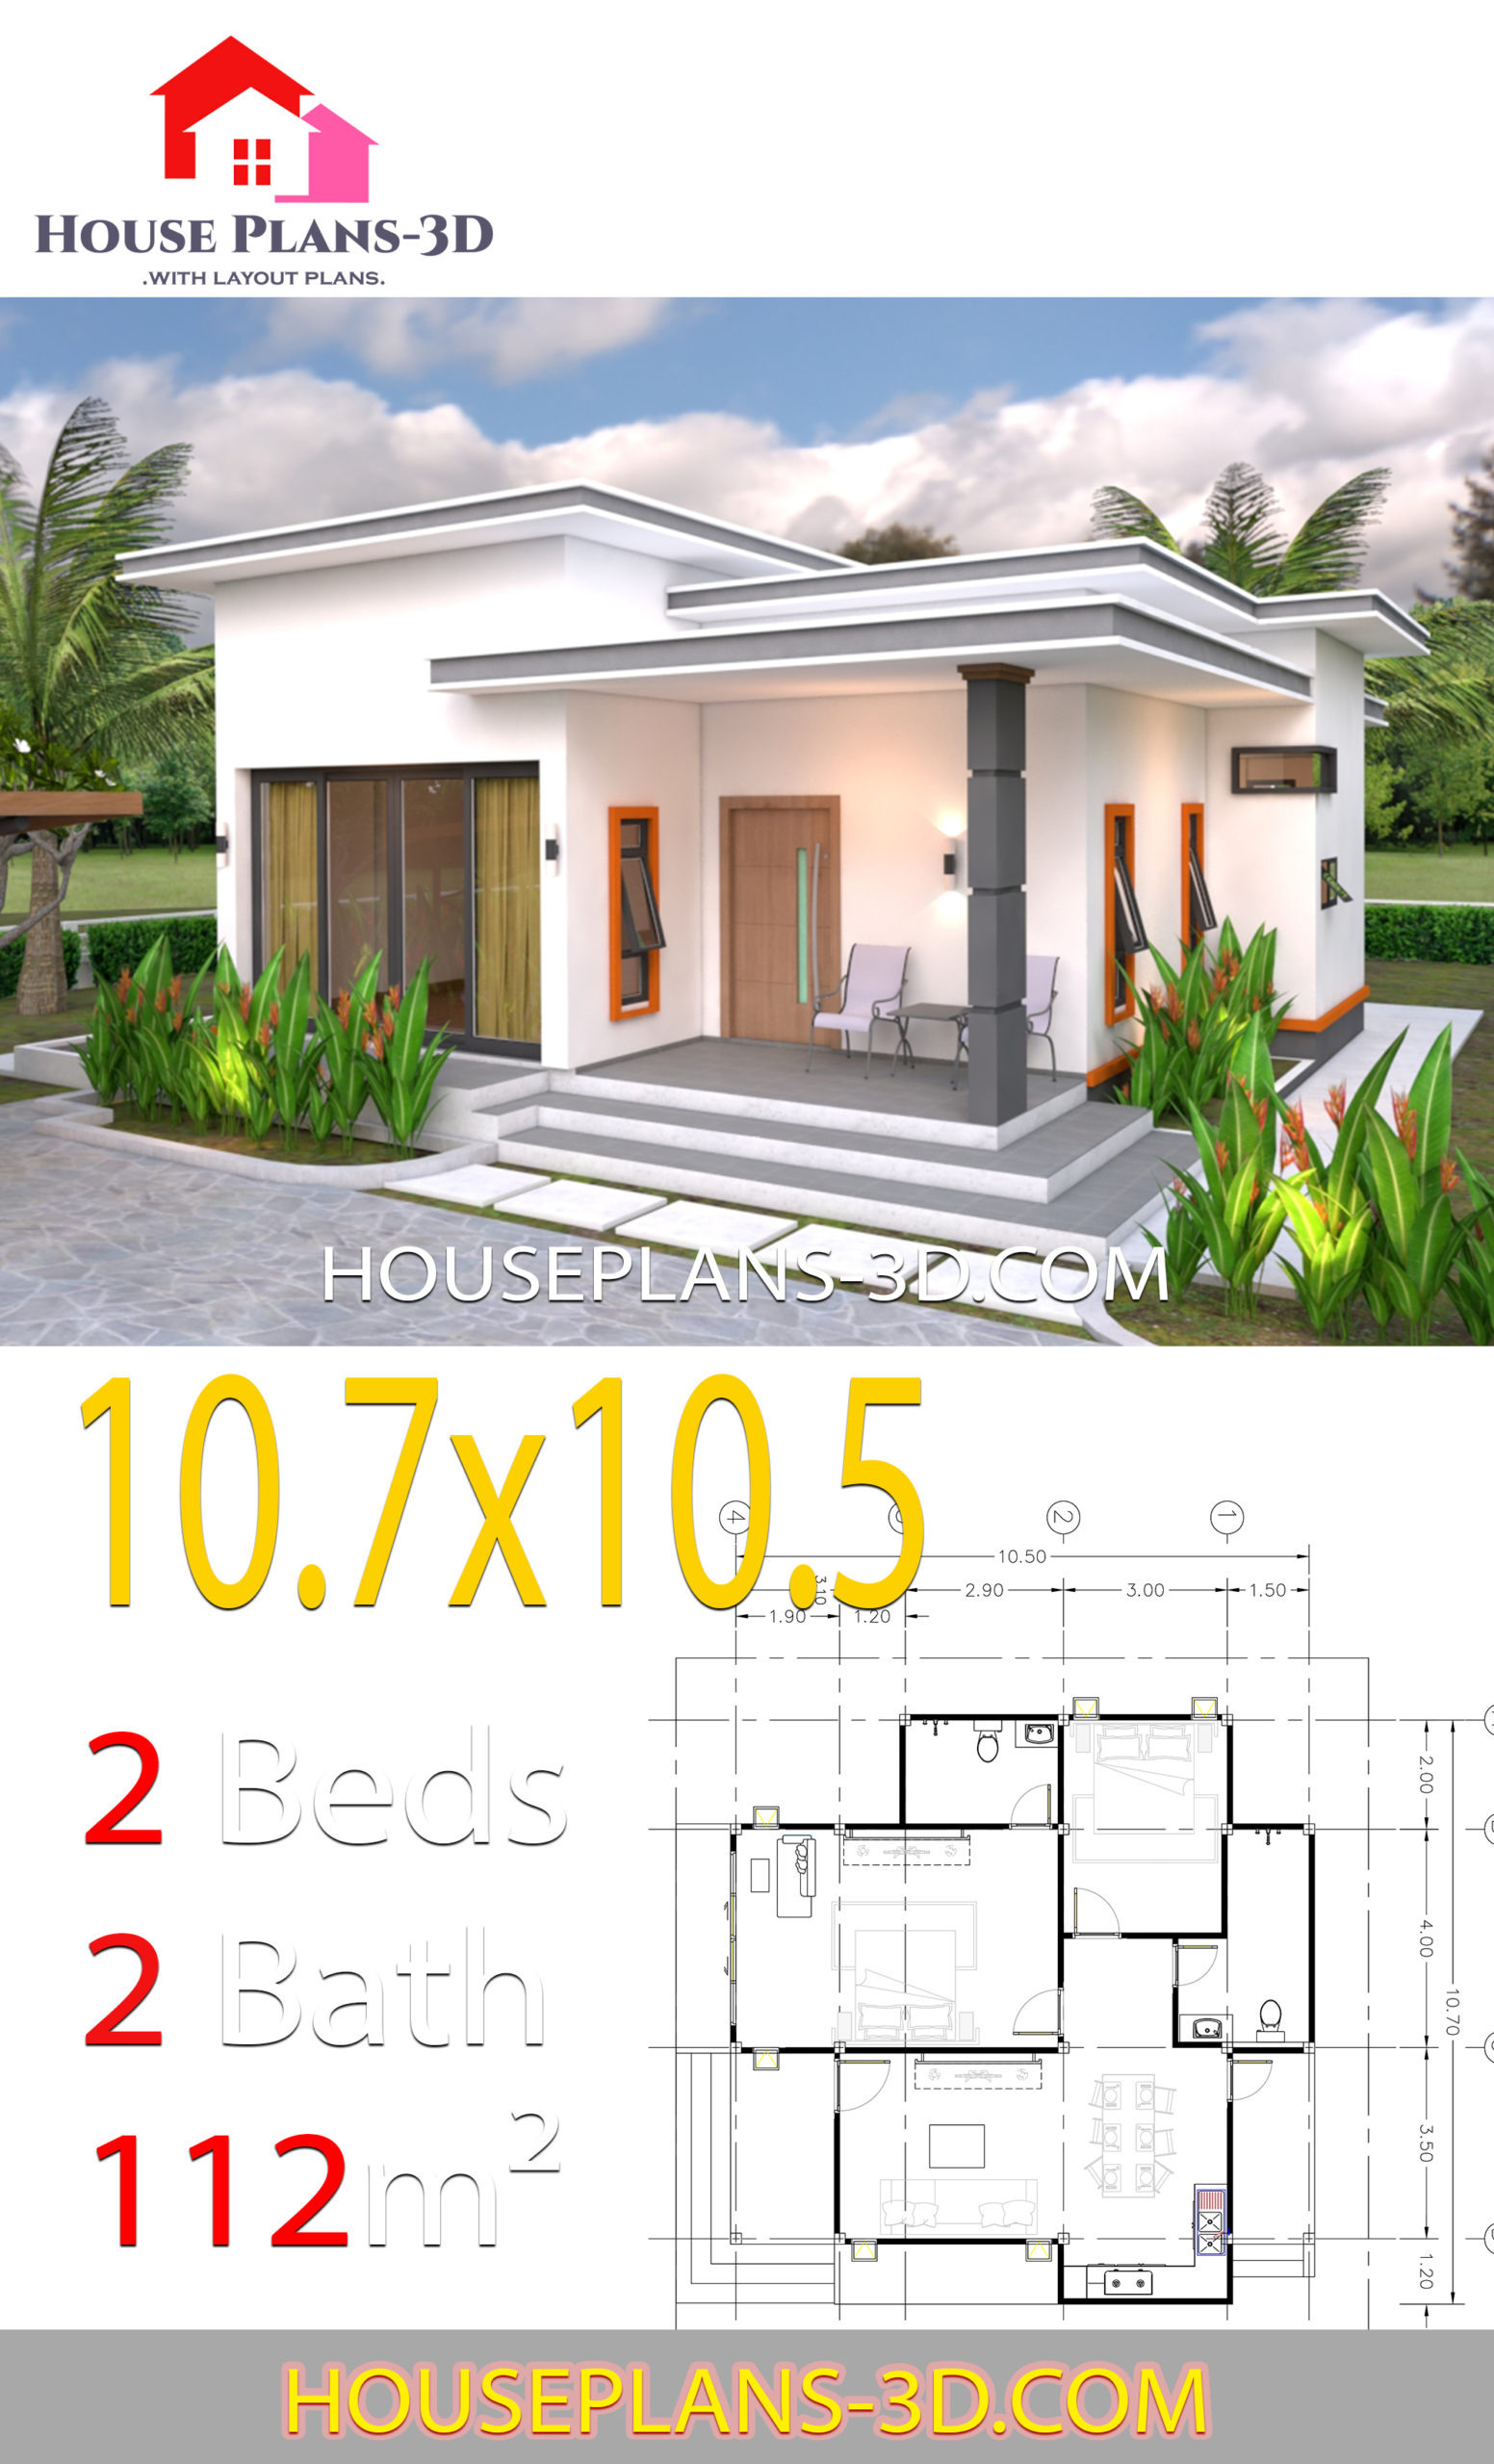 Flat Roof House Plans Ideas New House Plans 10 7x10 5 with 2 Bedrooms Flat Roof House Plans 3d